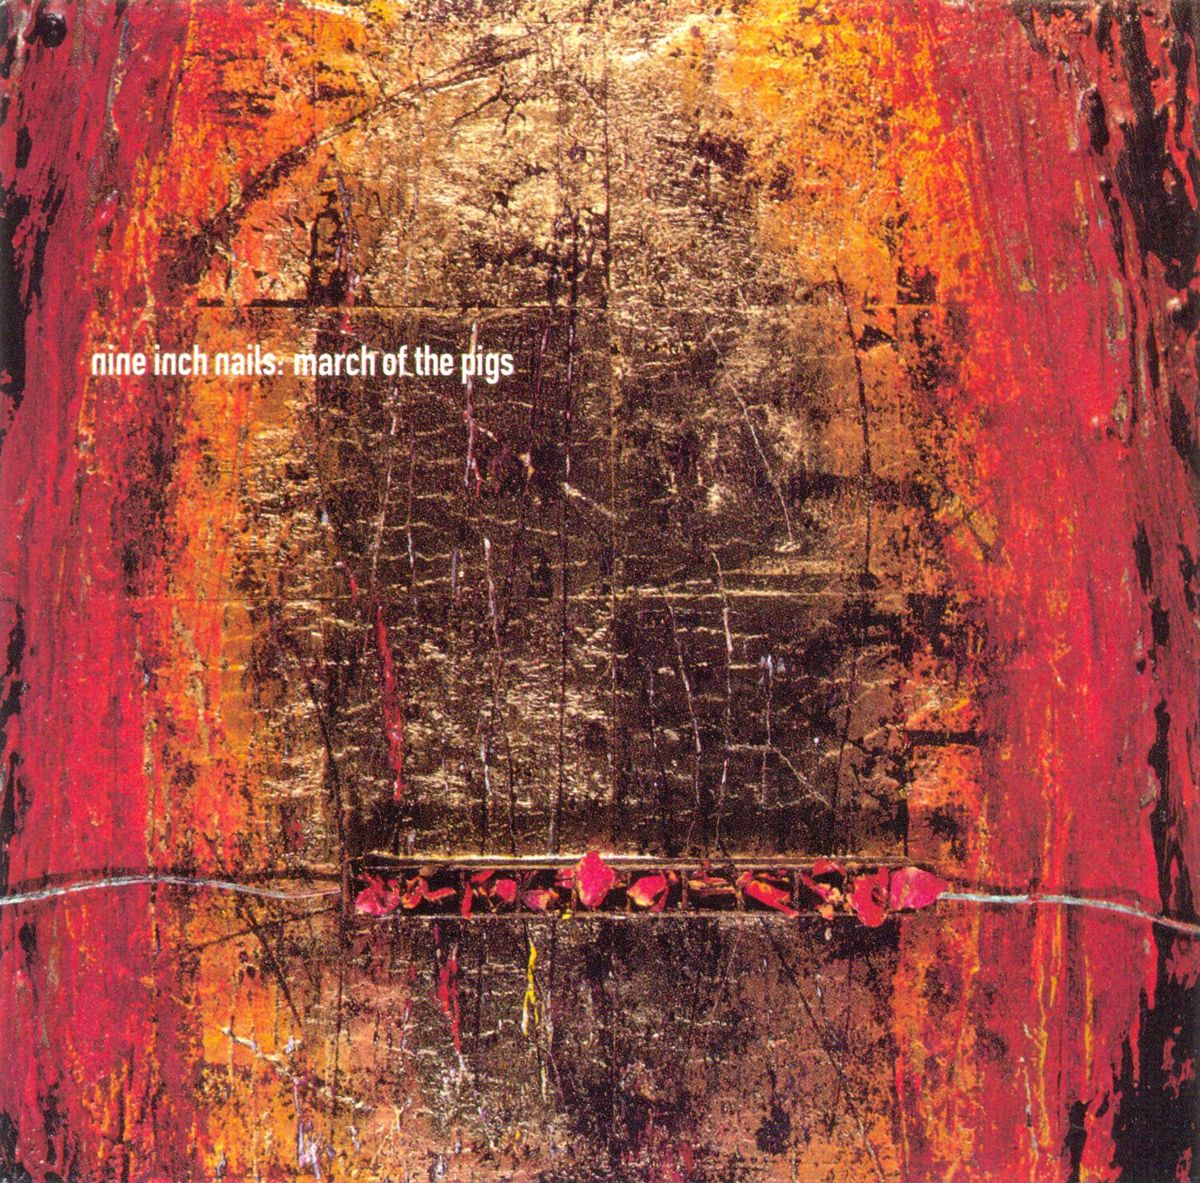 Nine Inch Nails - March Of The Pigs (Halo 7) (1994) | album cover ...